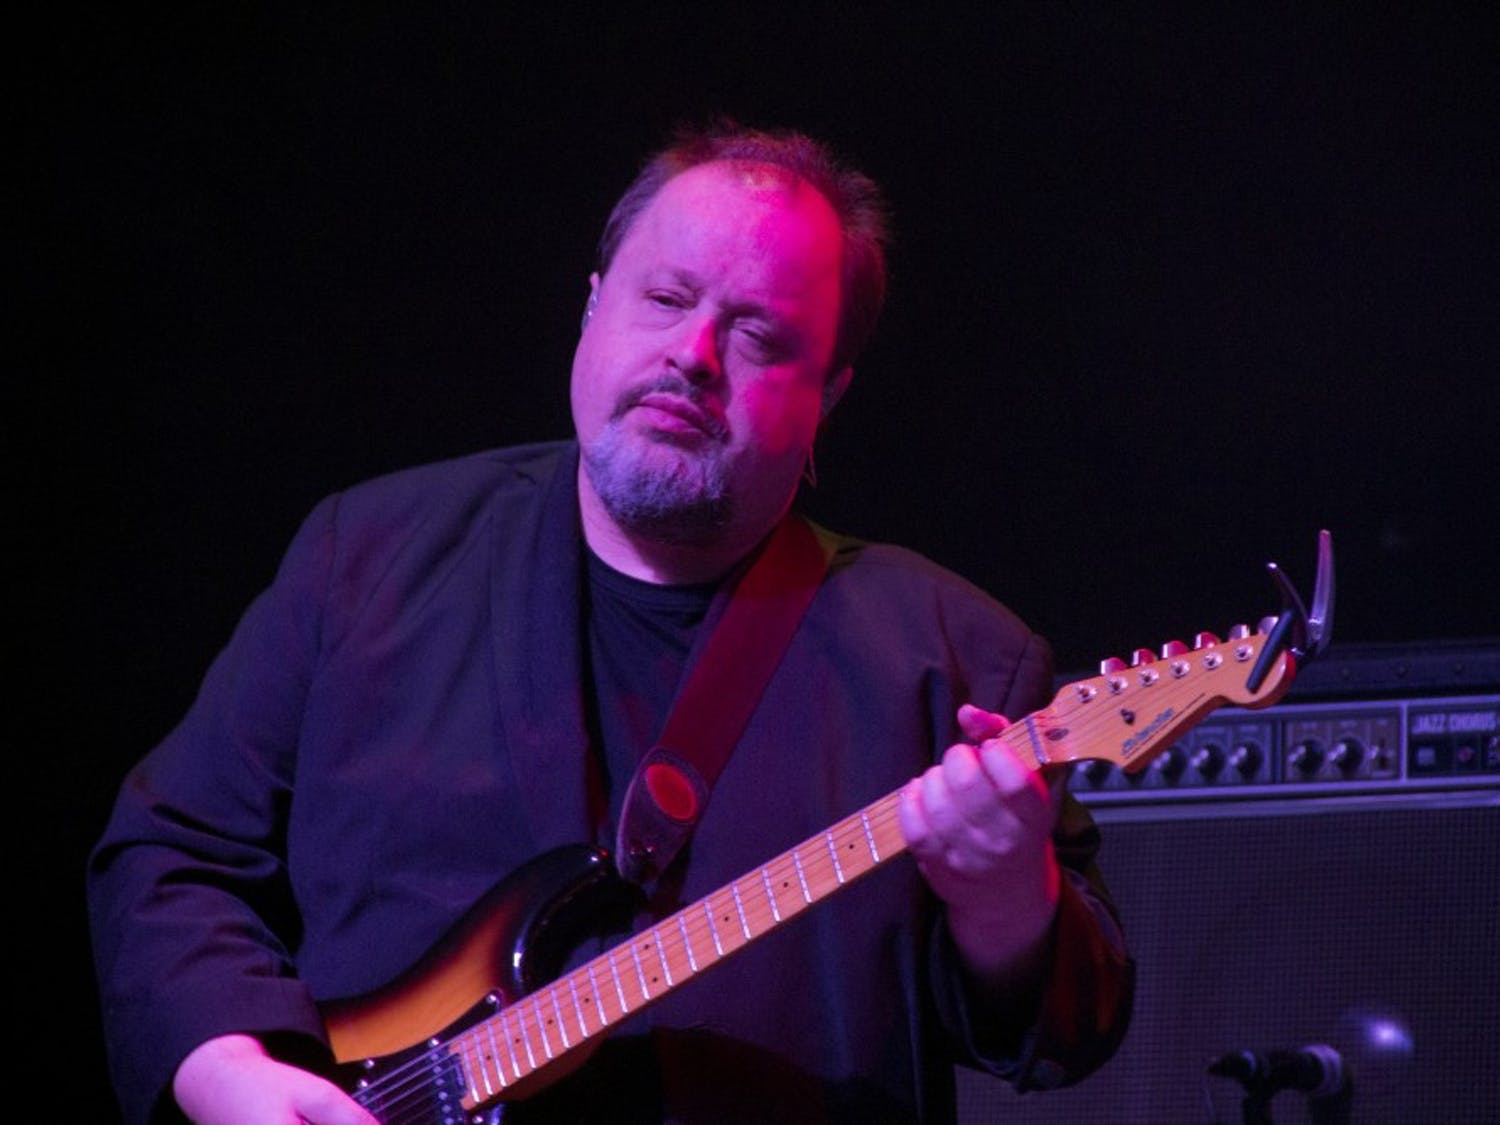 """Guitarist Steve Rothery discusses Marillion's newest album """"F.E.A.R"""" and it's approach during their US tour."""